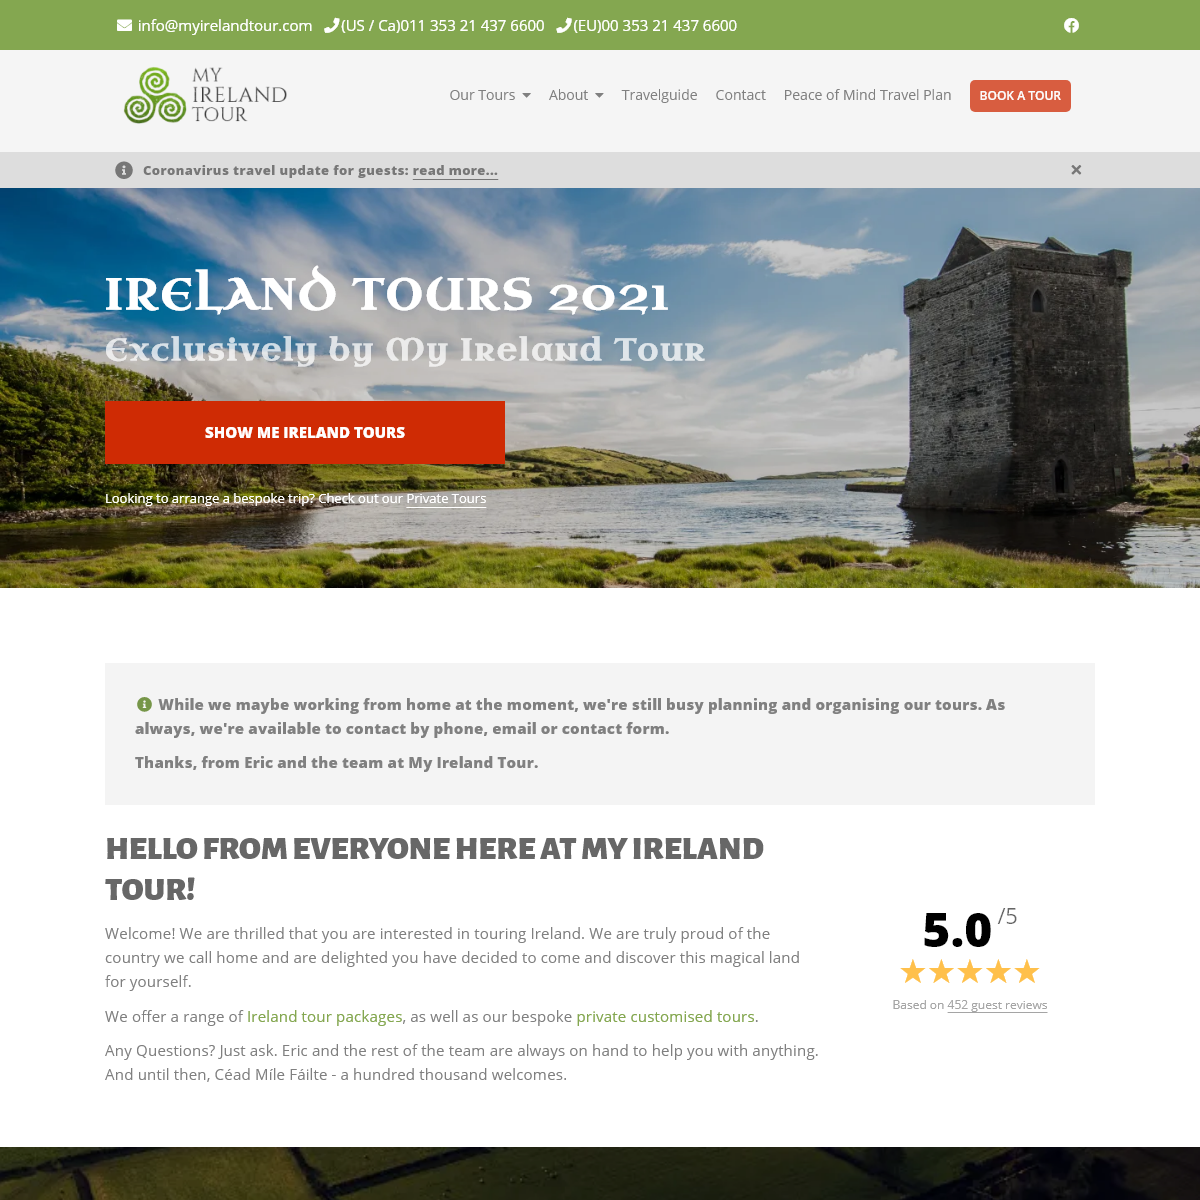 9 Ireland Tours for 2021 - Smaller Groups, More Care - My Ireland Tour